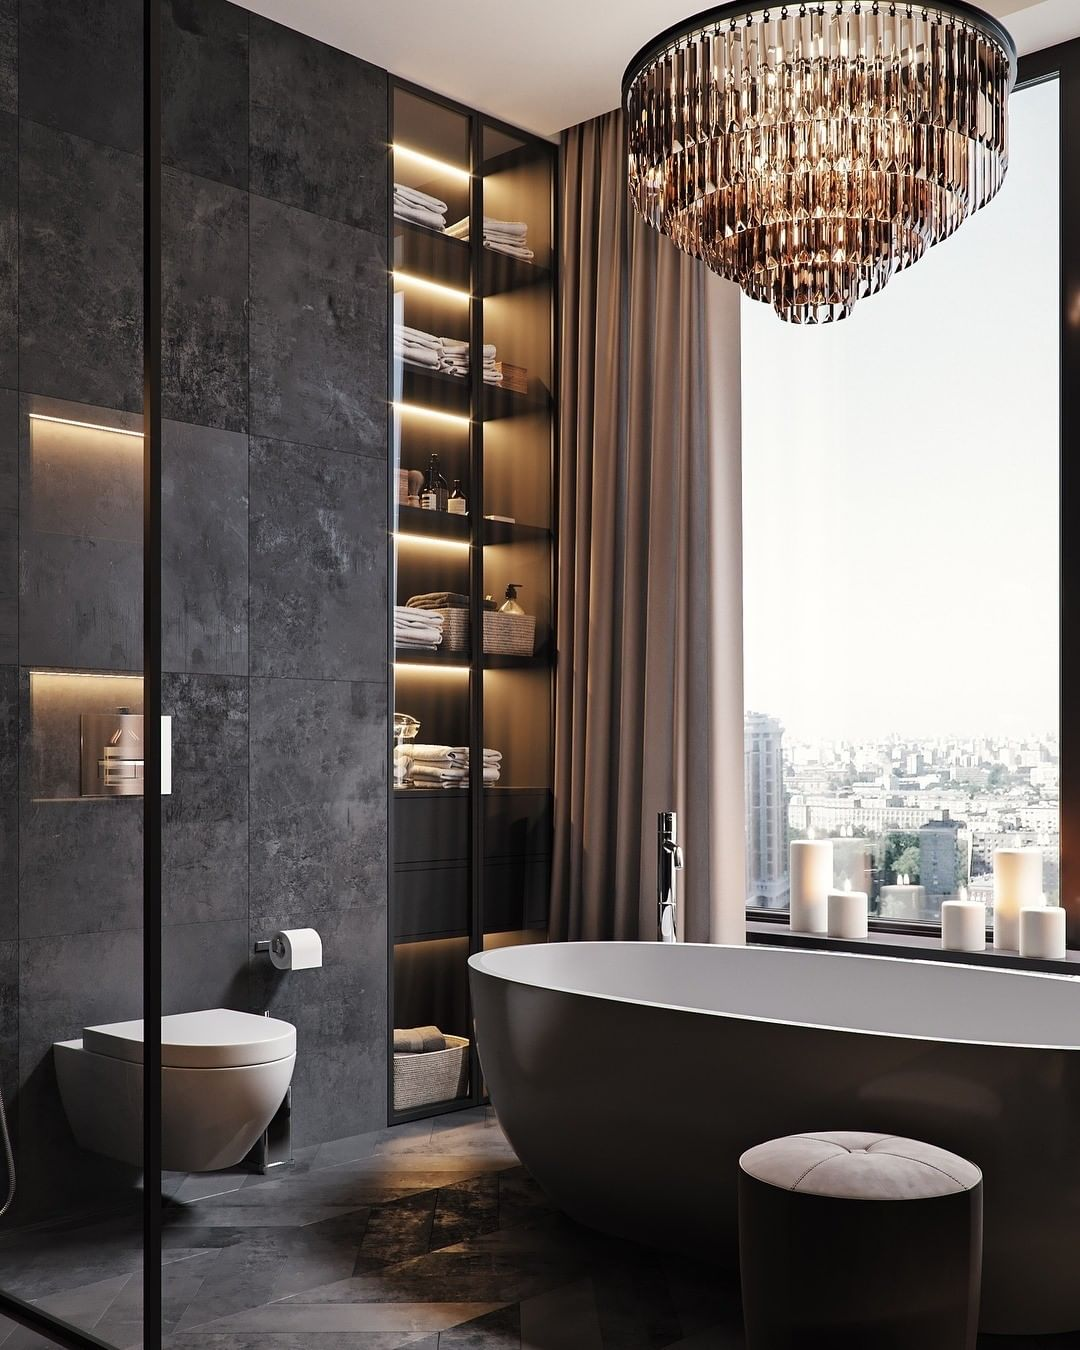 Bathroom With a View, bathroom, view, design, bathtub, maison valentina, bathroom  Bathroom With a View: 7 Captivating Designs tsaunya design